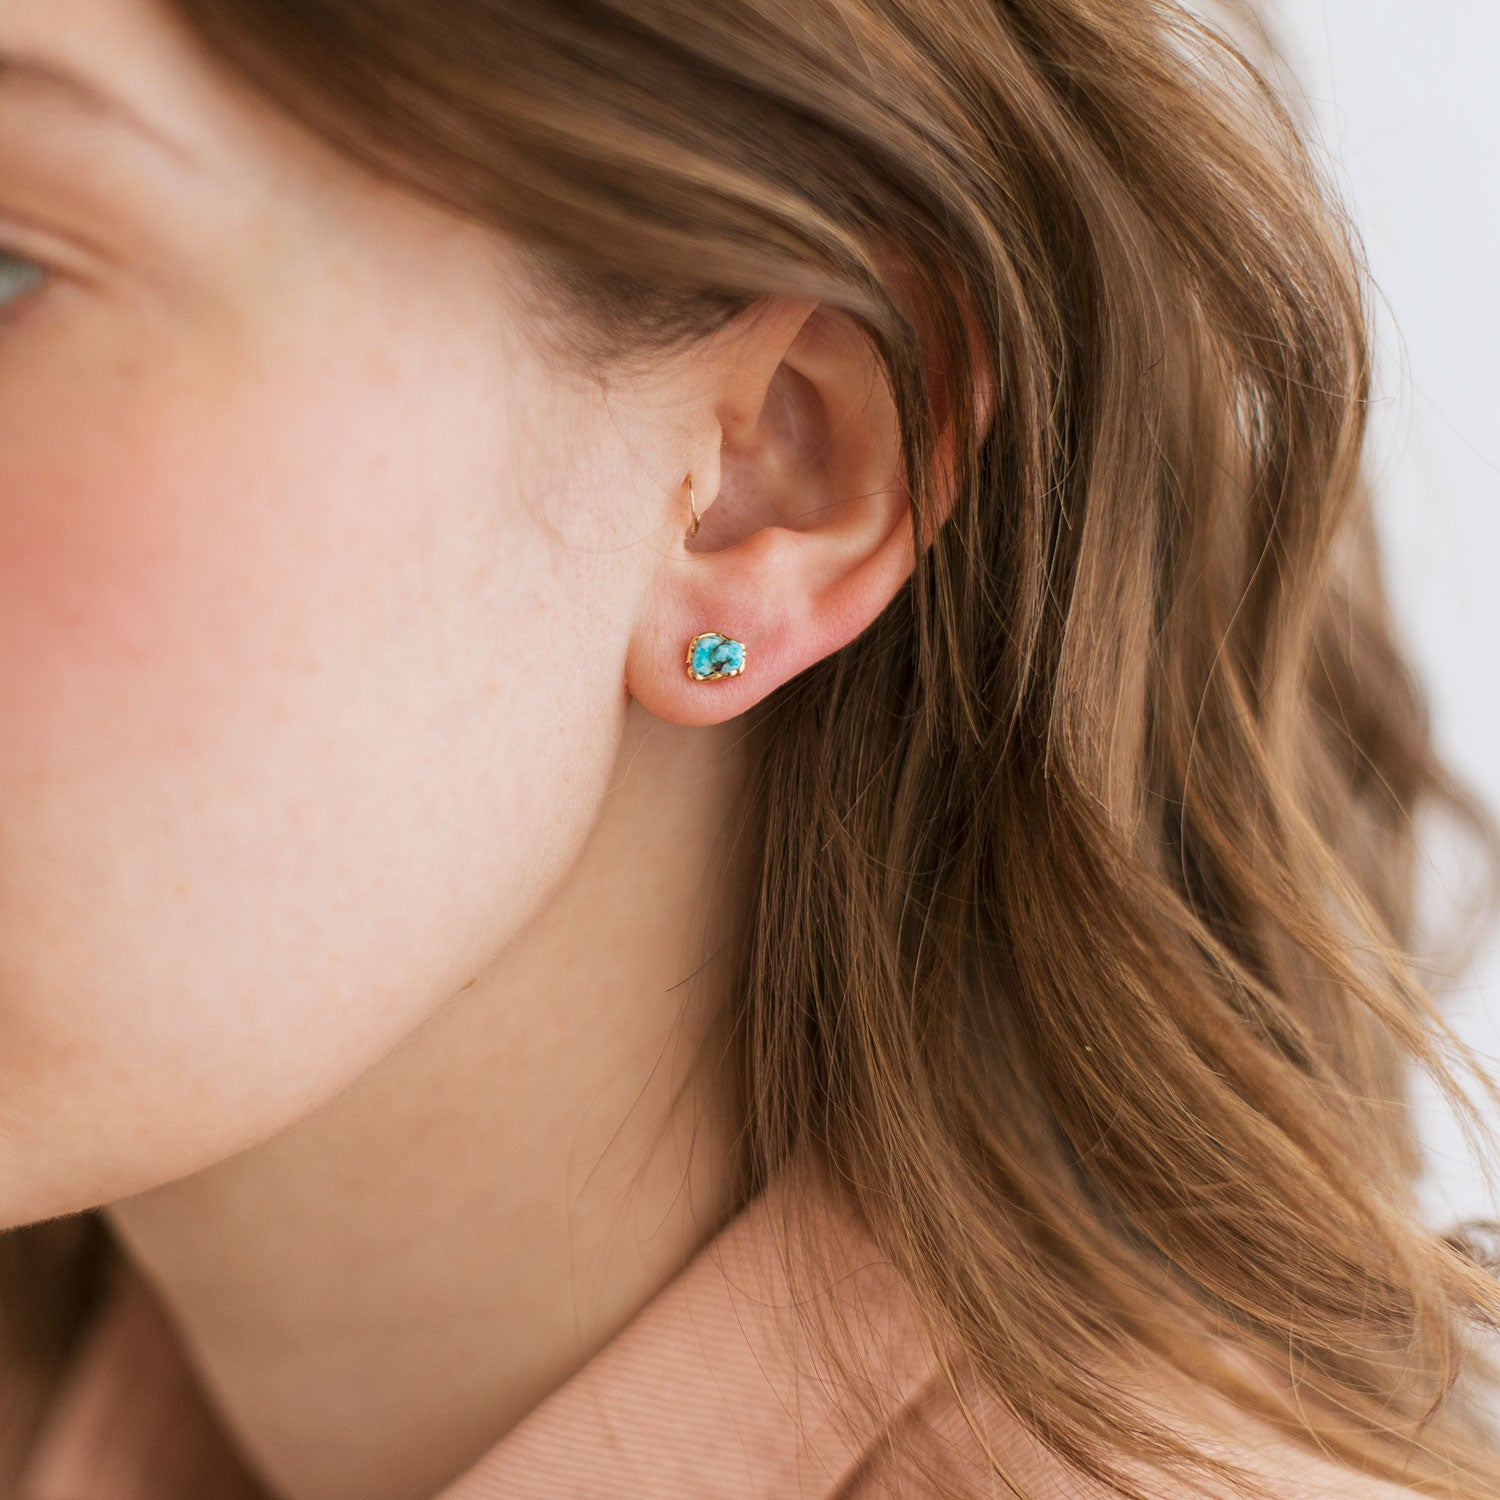 Turquoise Birthstone Earrings by Dani Barbe